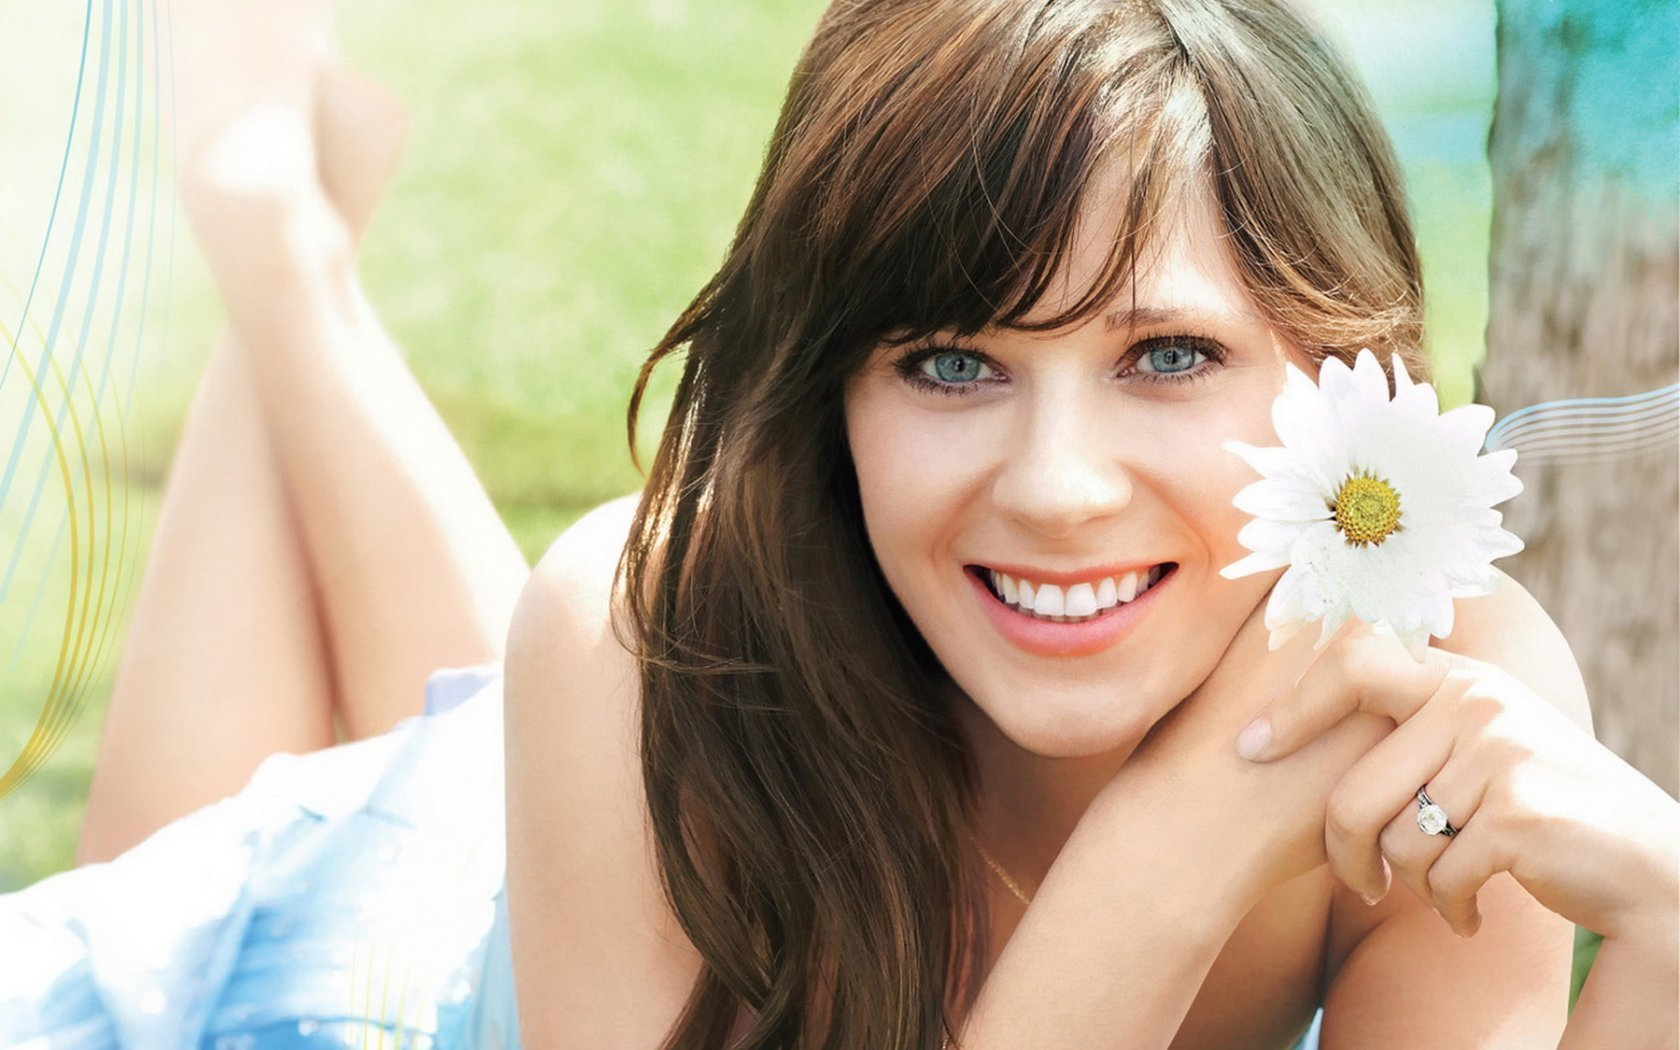 woman zooey deschanel HD Wallpaper